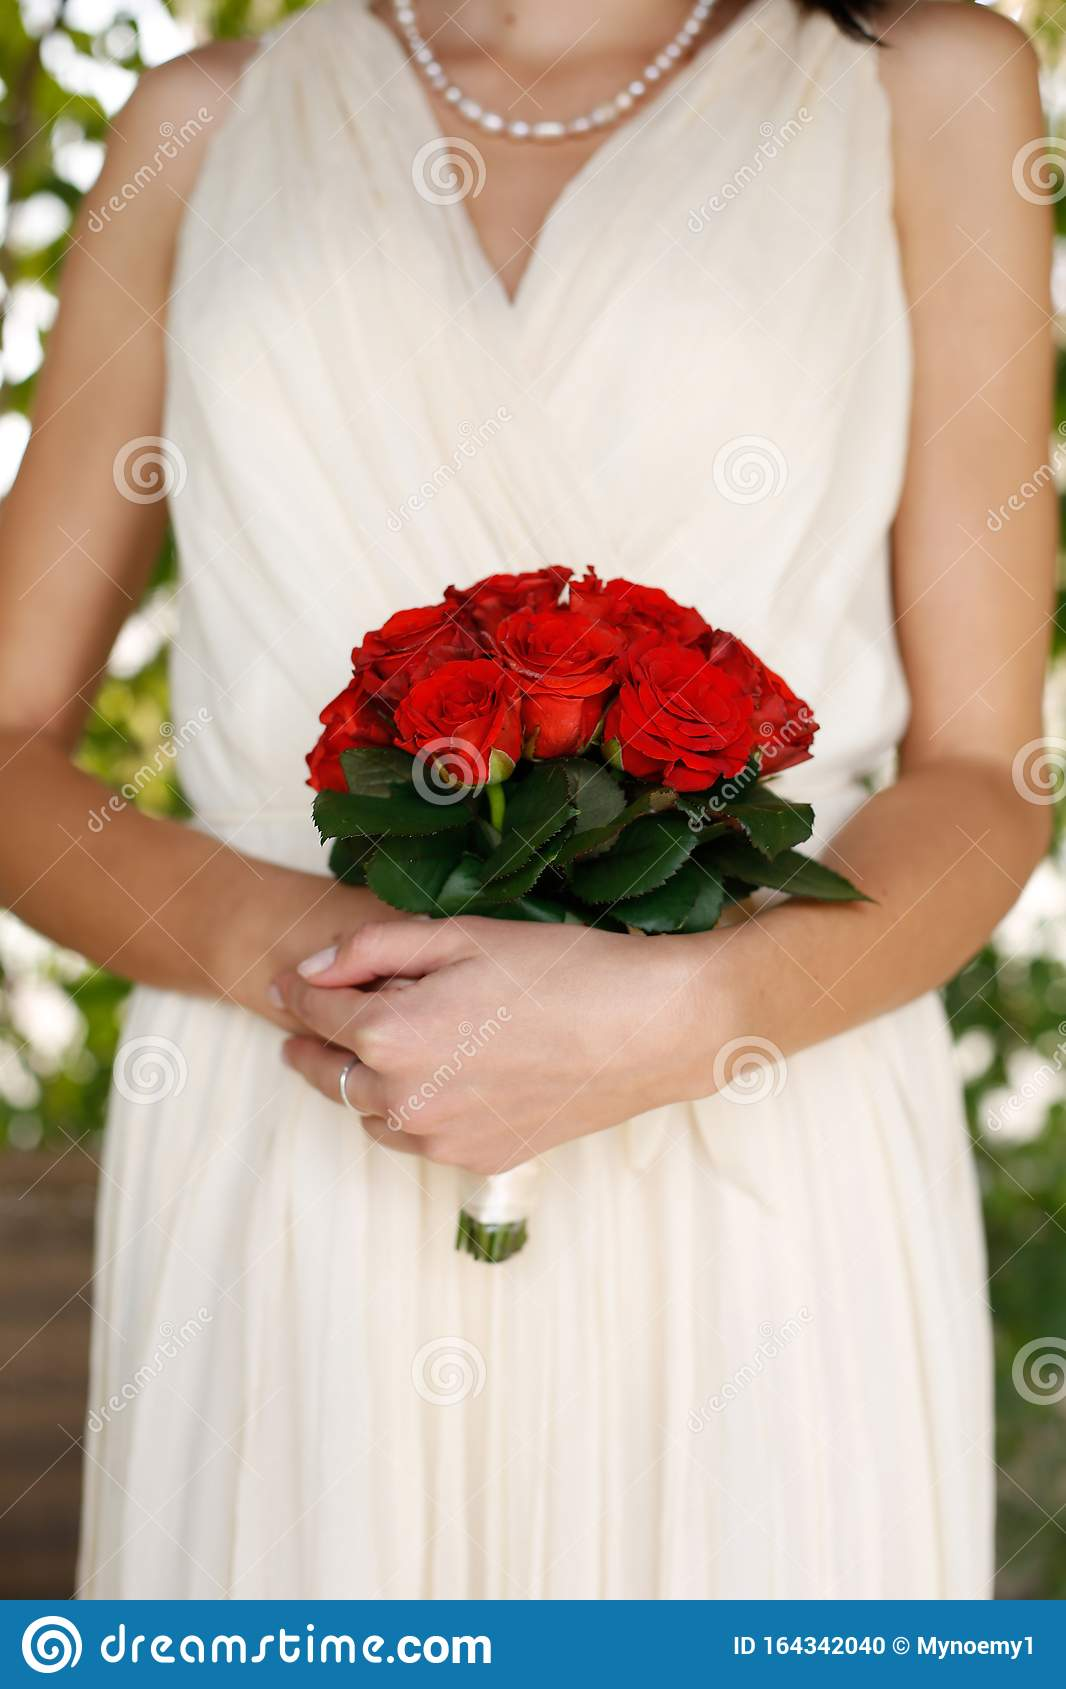 Bride Hands With Rose Wedding Bouqiet Stock Photo   Image of ...